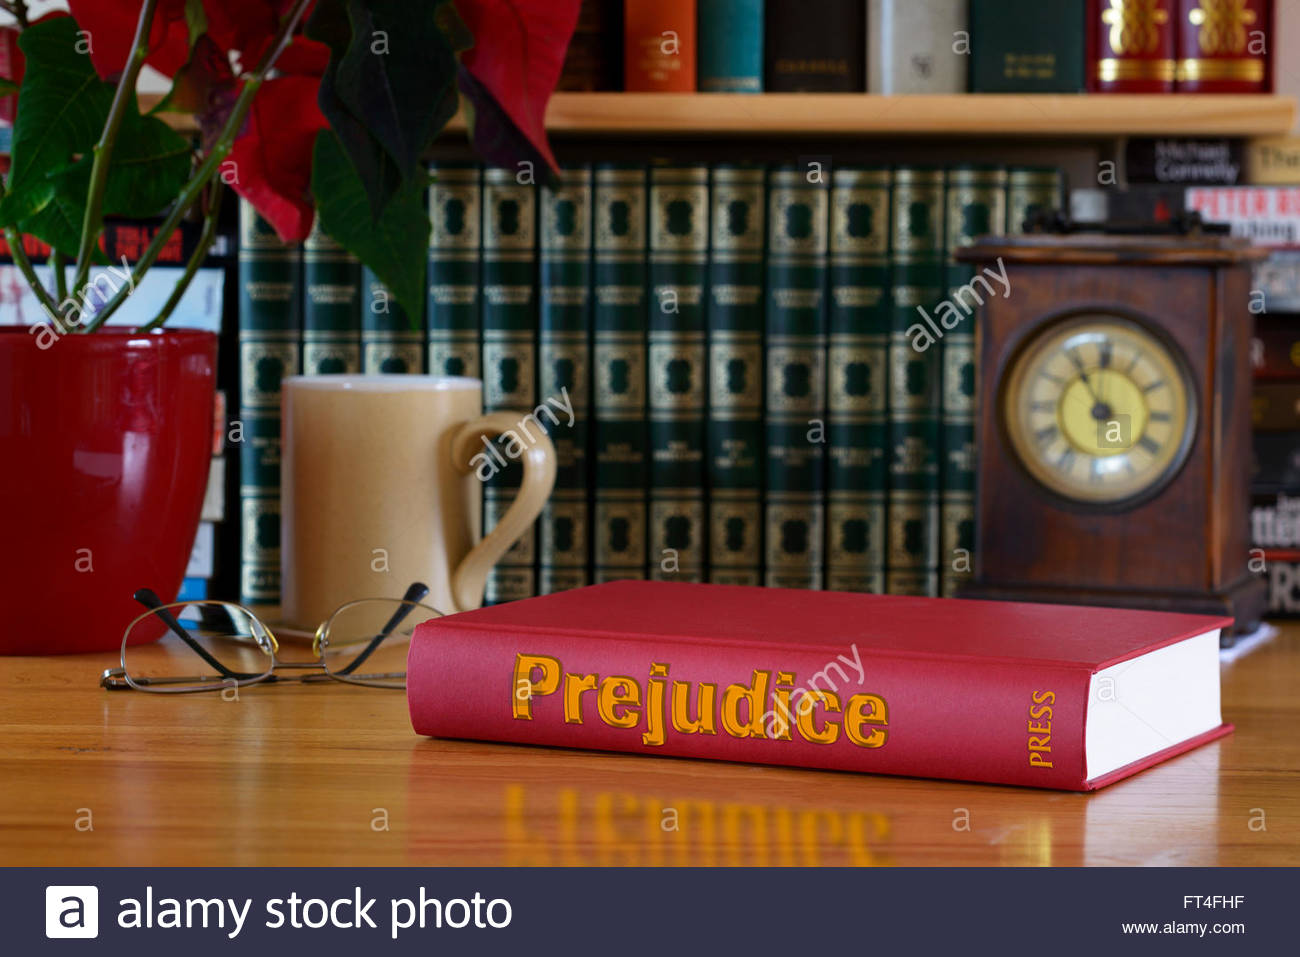 Prejudice book title, stacked used books, England - Stock Image